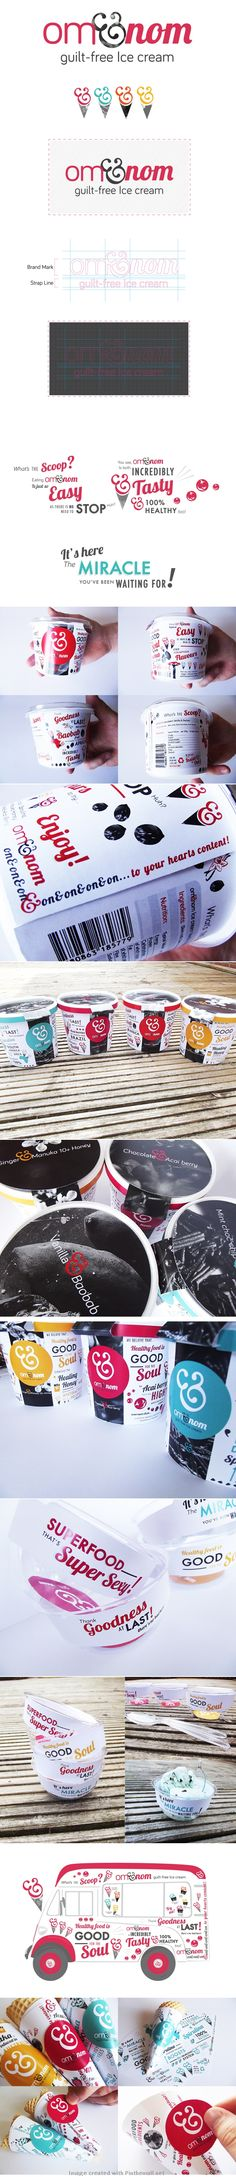 This was so popular I went back and got the rest of the Om-Nom #icecream #packaging #branding story PD created via https://www.behance.net/gallery/Om-nom-Ice-Cream-brand/8663263